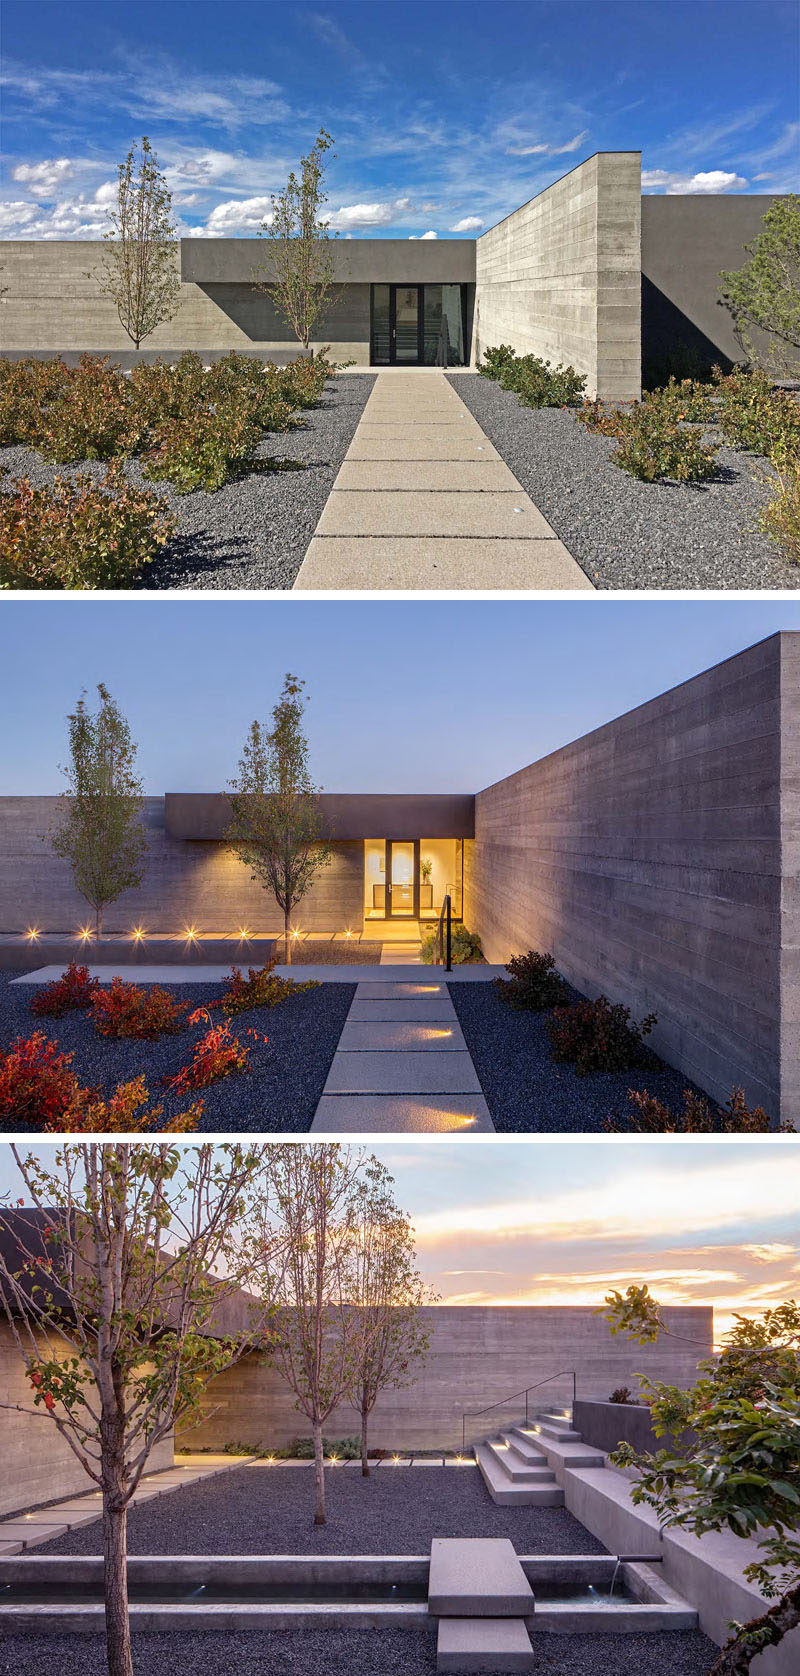 This modern landscaping includes a path that's lit up at night, and a recessed courtyard with a simple water feature.